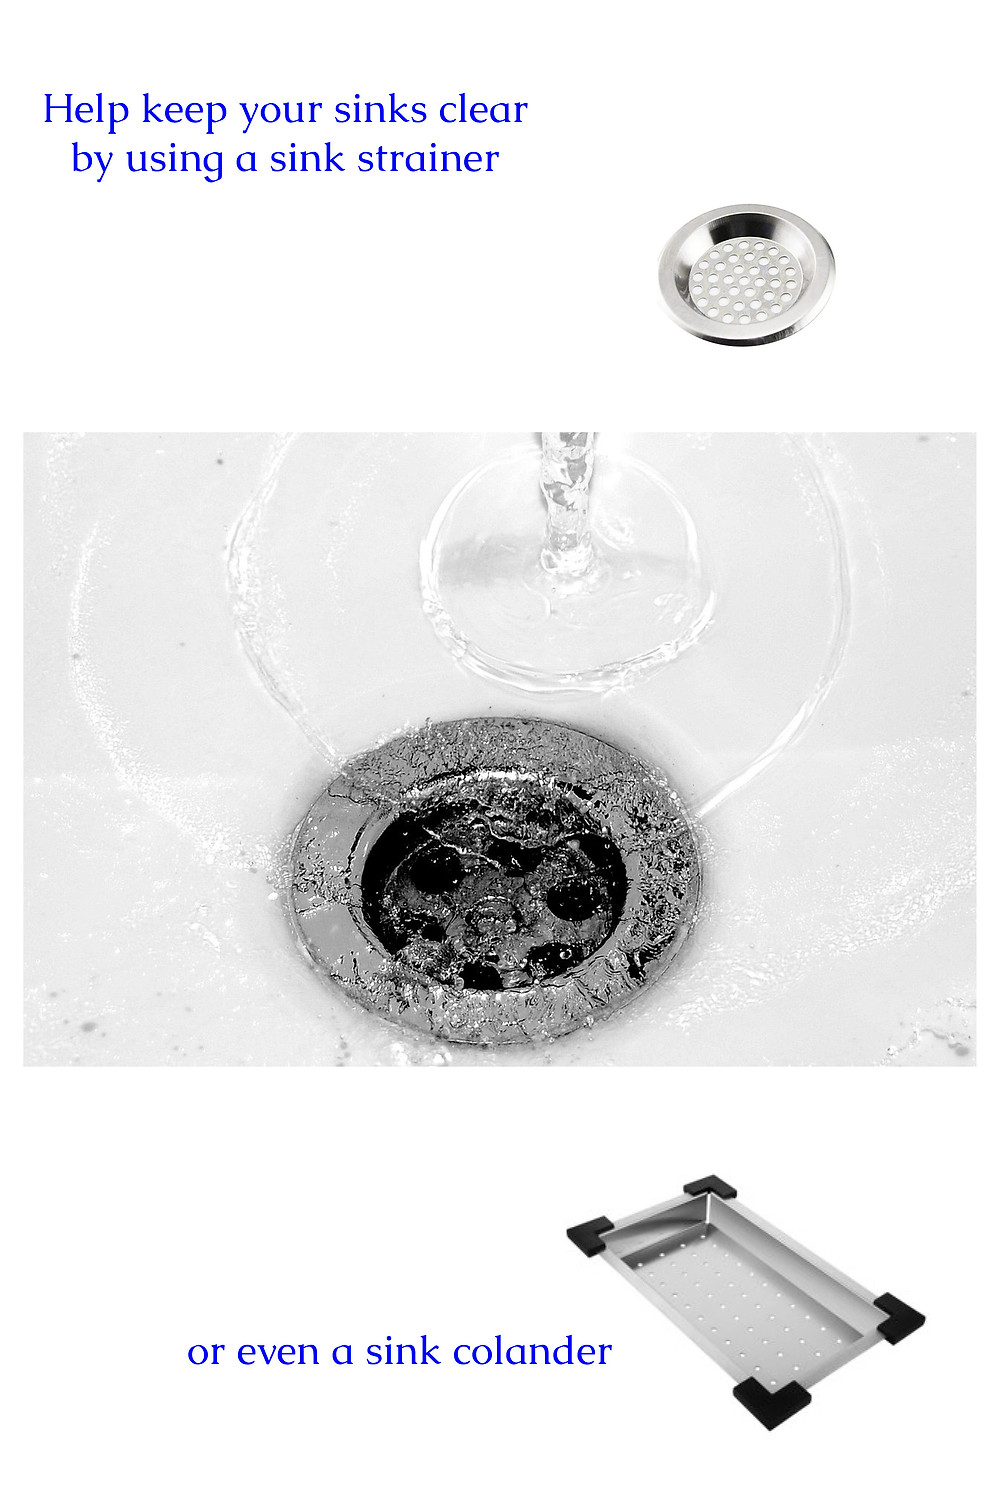 sink strainers help keep drains unclogged